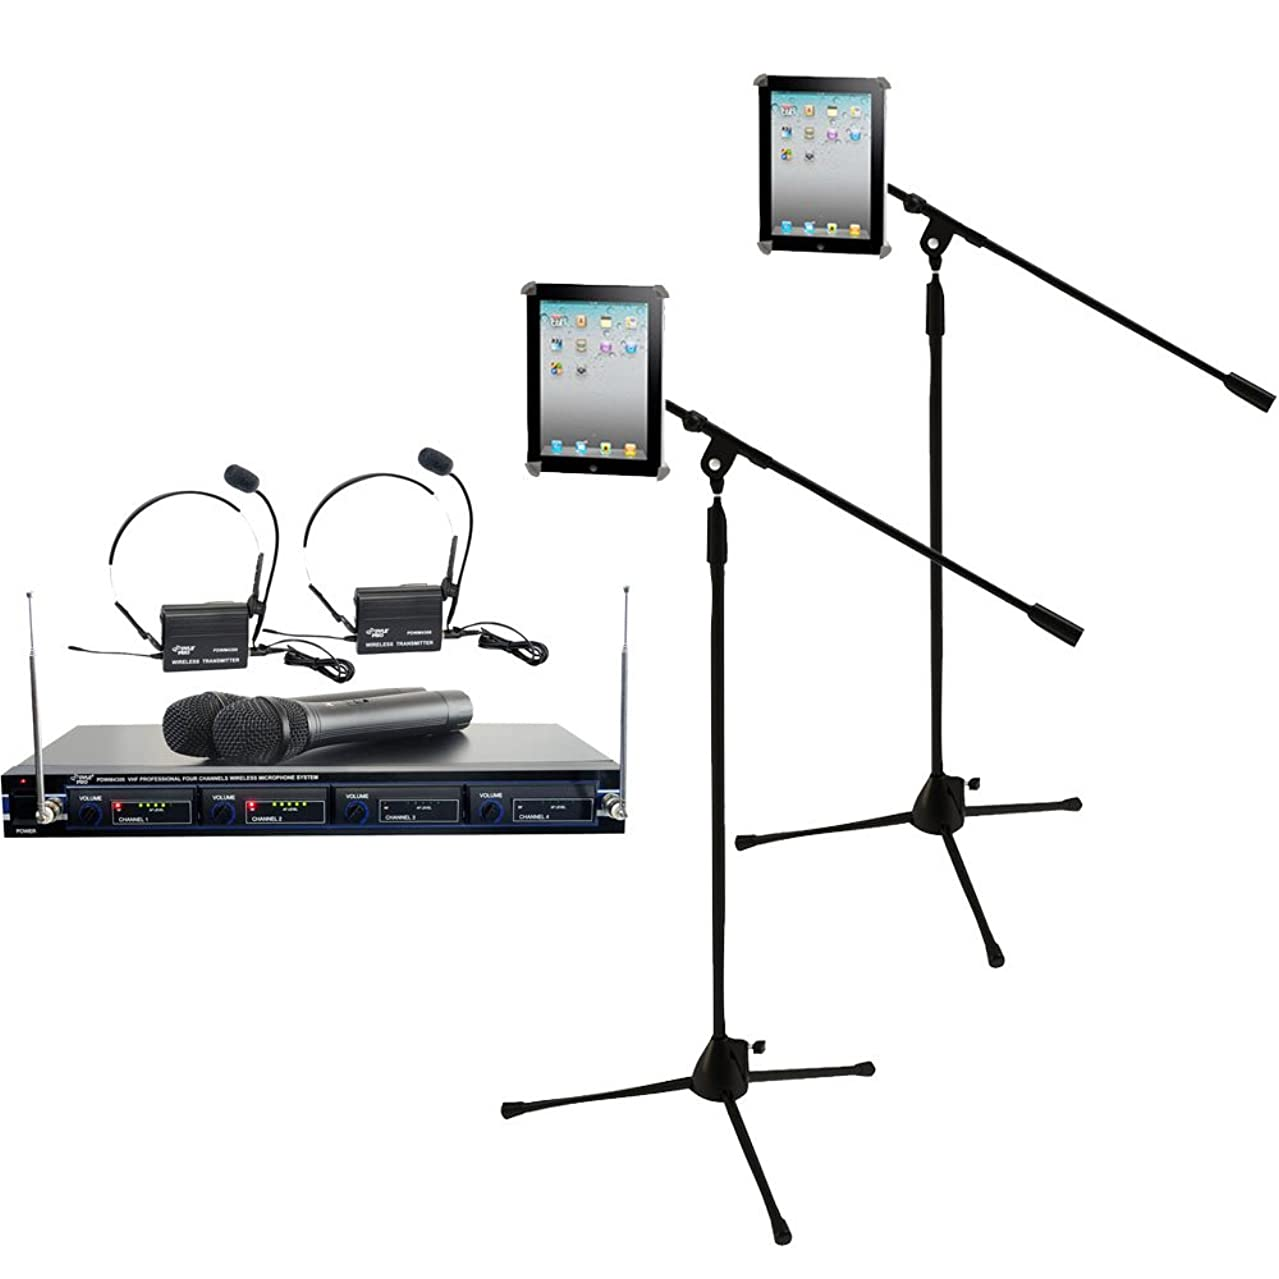 Pyle Mic and Stand Package - PDWM4300 4 Mic VHF Wireless Rack Mount Microphone System - x2 PMKSPAD1 Multimedia Microphone Stand With Adapter for iPad 2 (Adjustable for Compatibility w/iPad 1)